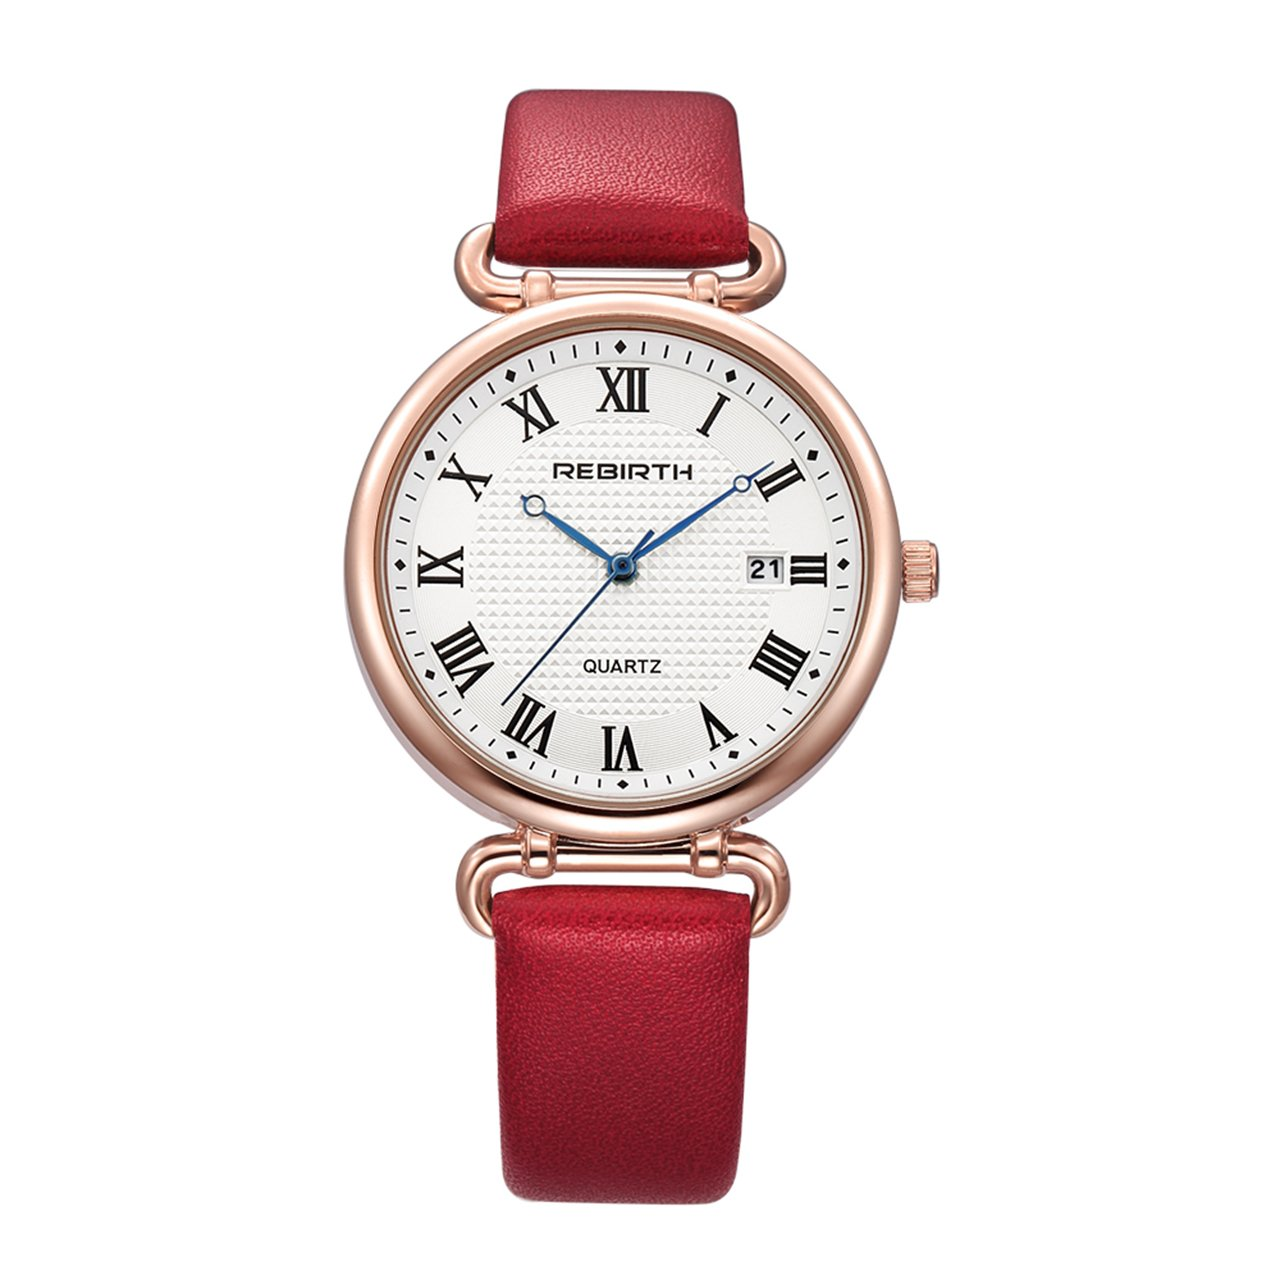 Top Plaza Women Elegant Simple Rose Gold Tone Bracelet Watch Japanese Movement Roman Numerals PU Leather Waterproof Analog Quartz Watch(Red)